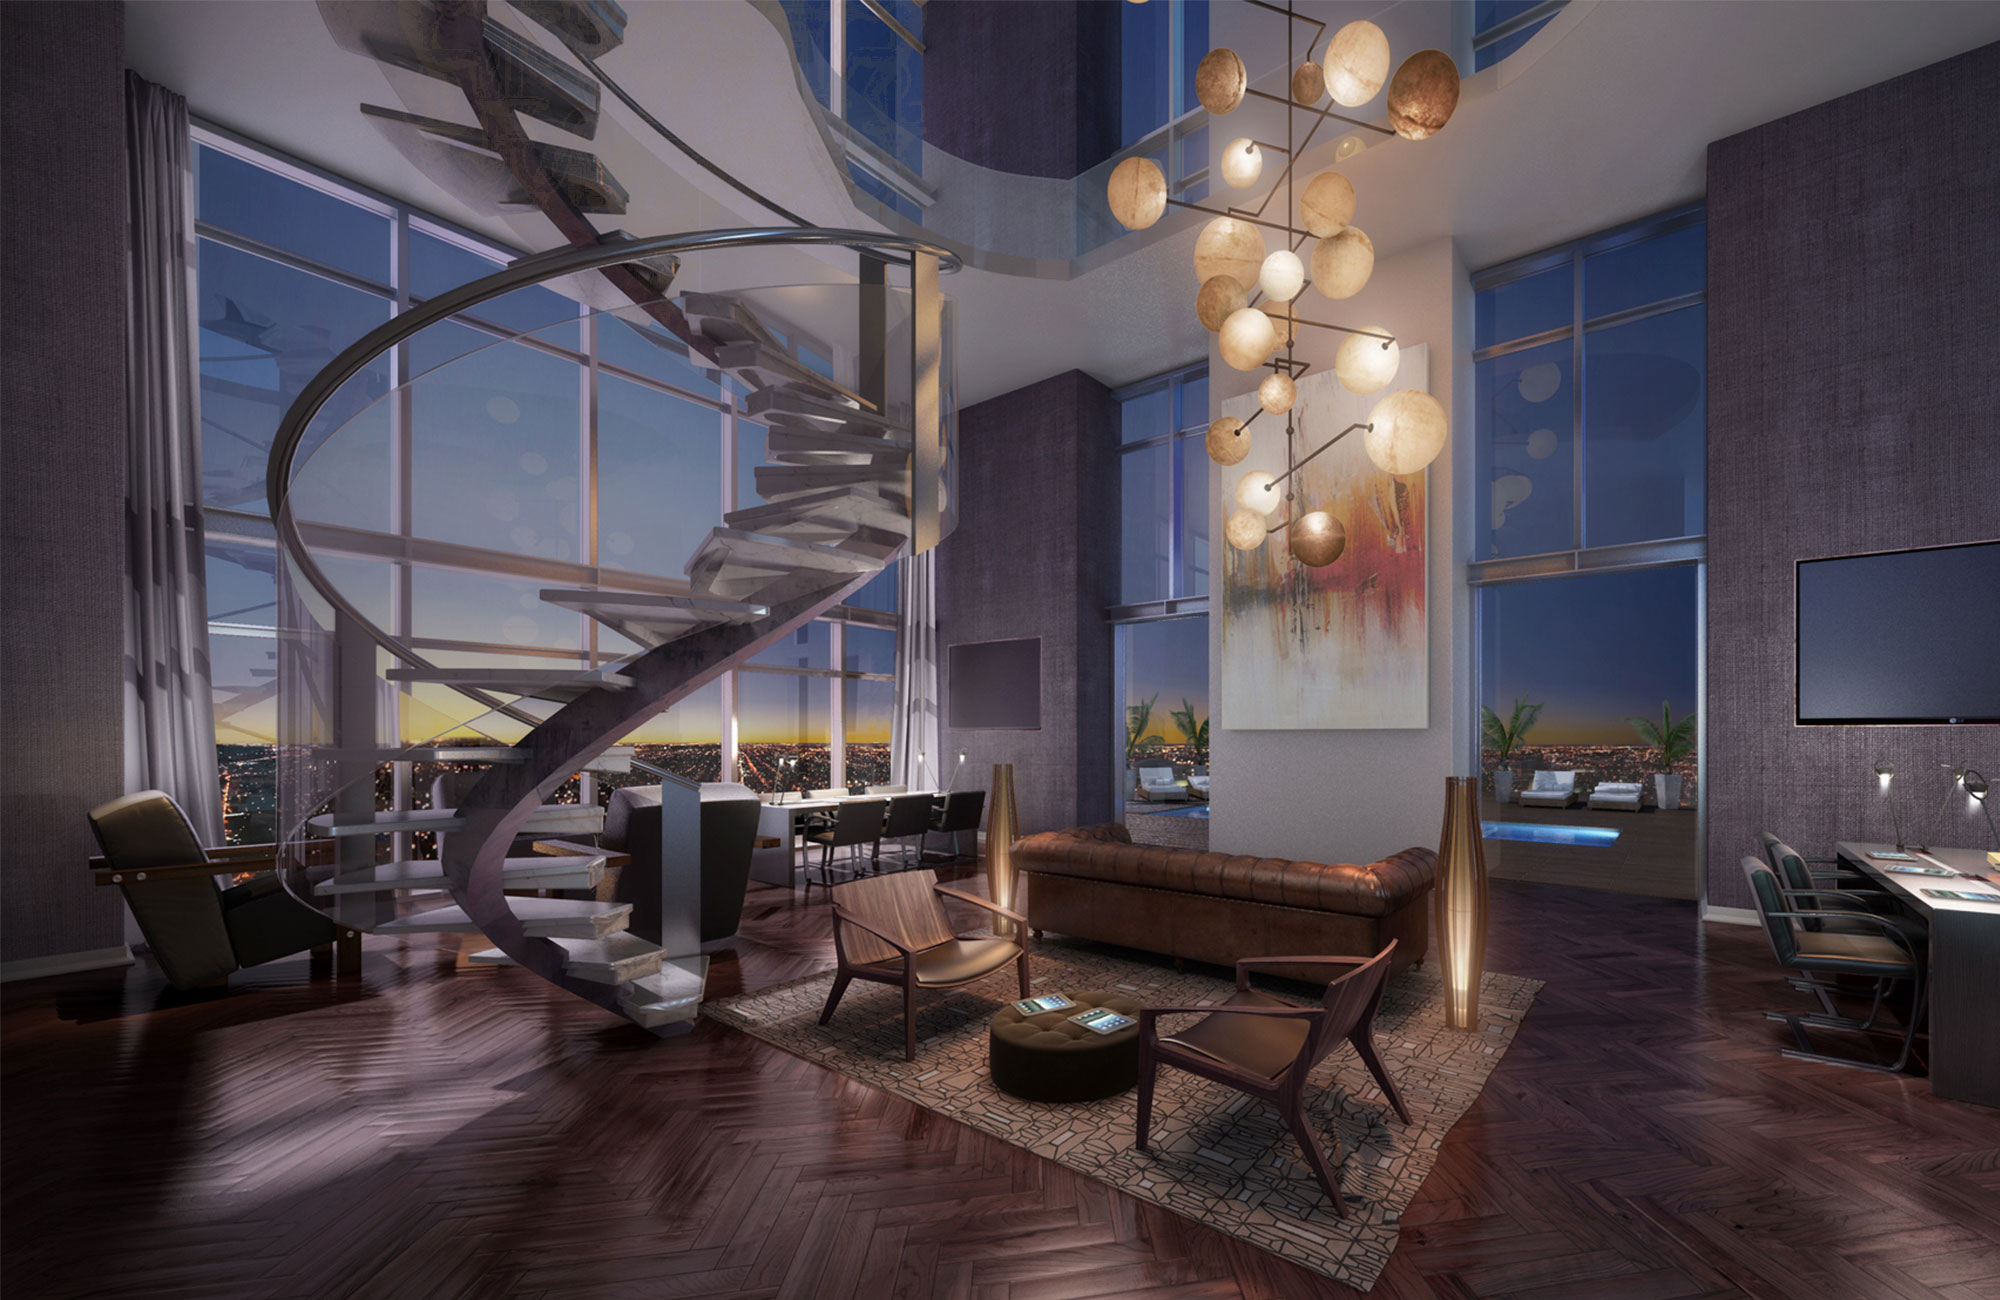 SLS LUX Brickell Hotel  Residences Now Open in Miami